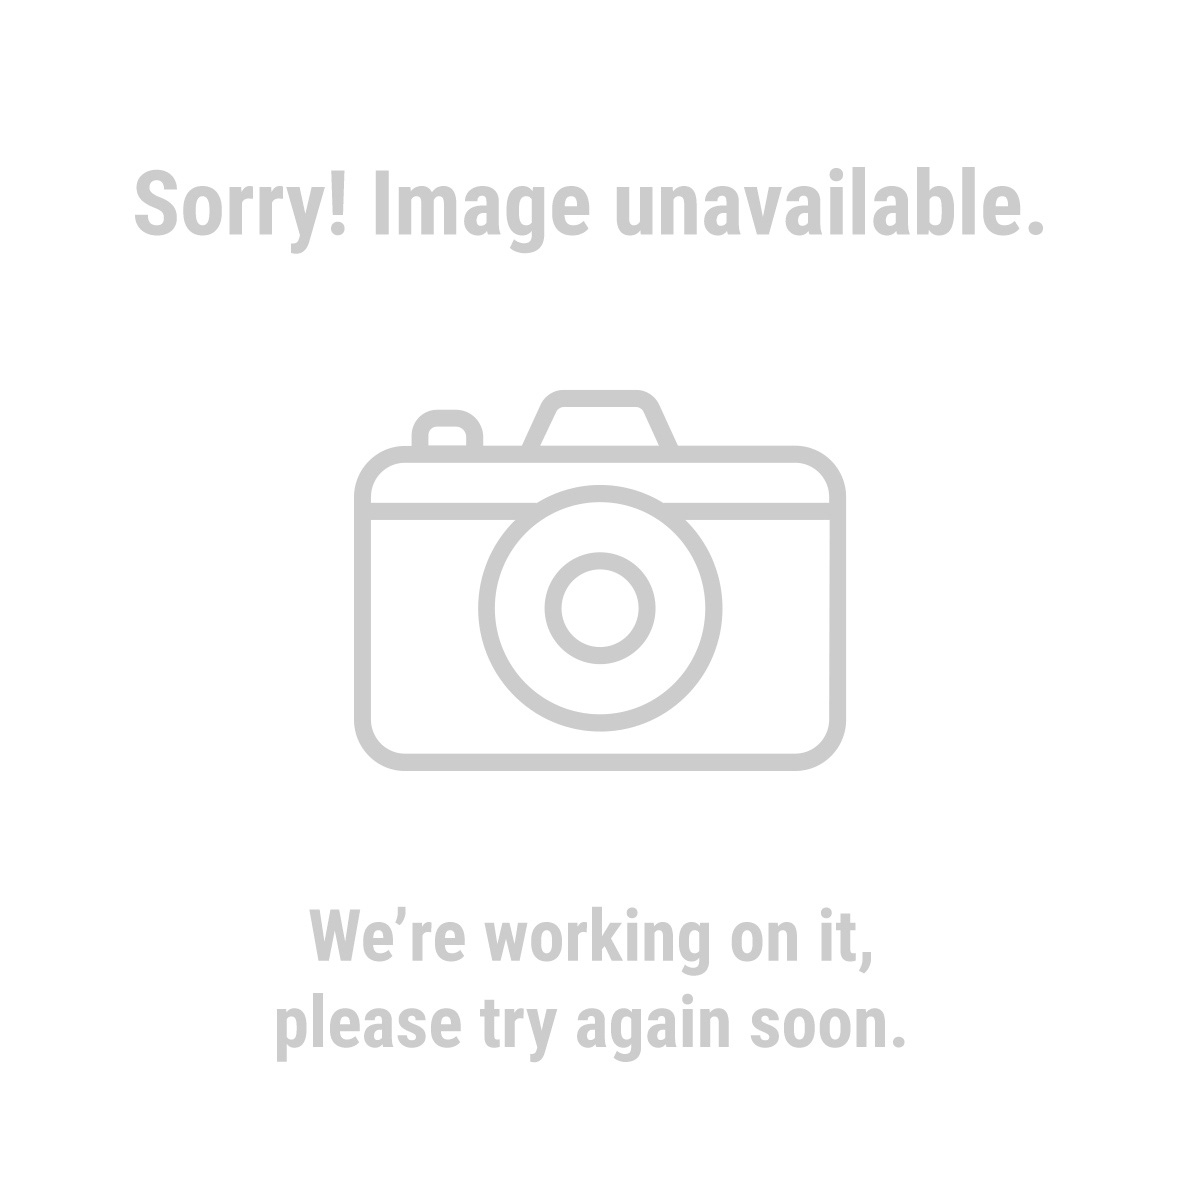 Cen-Tech 93543 Digital Pocket Scale